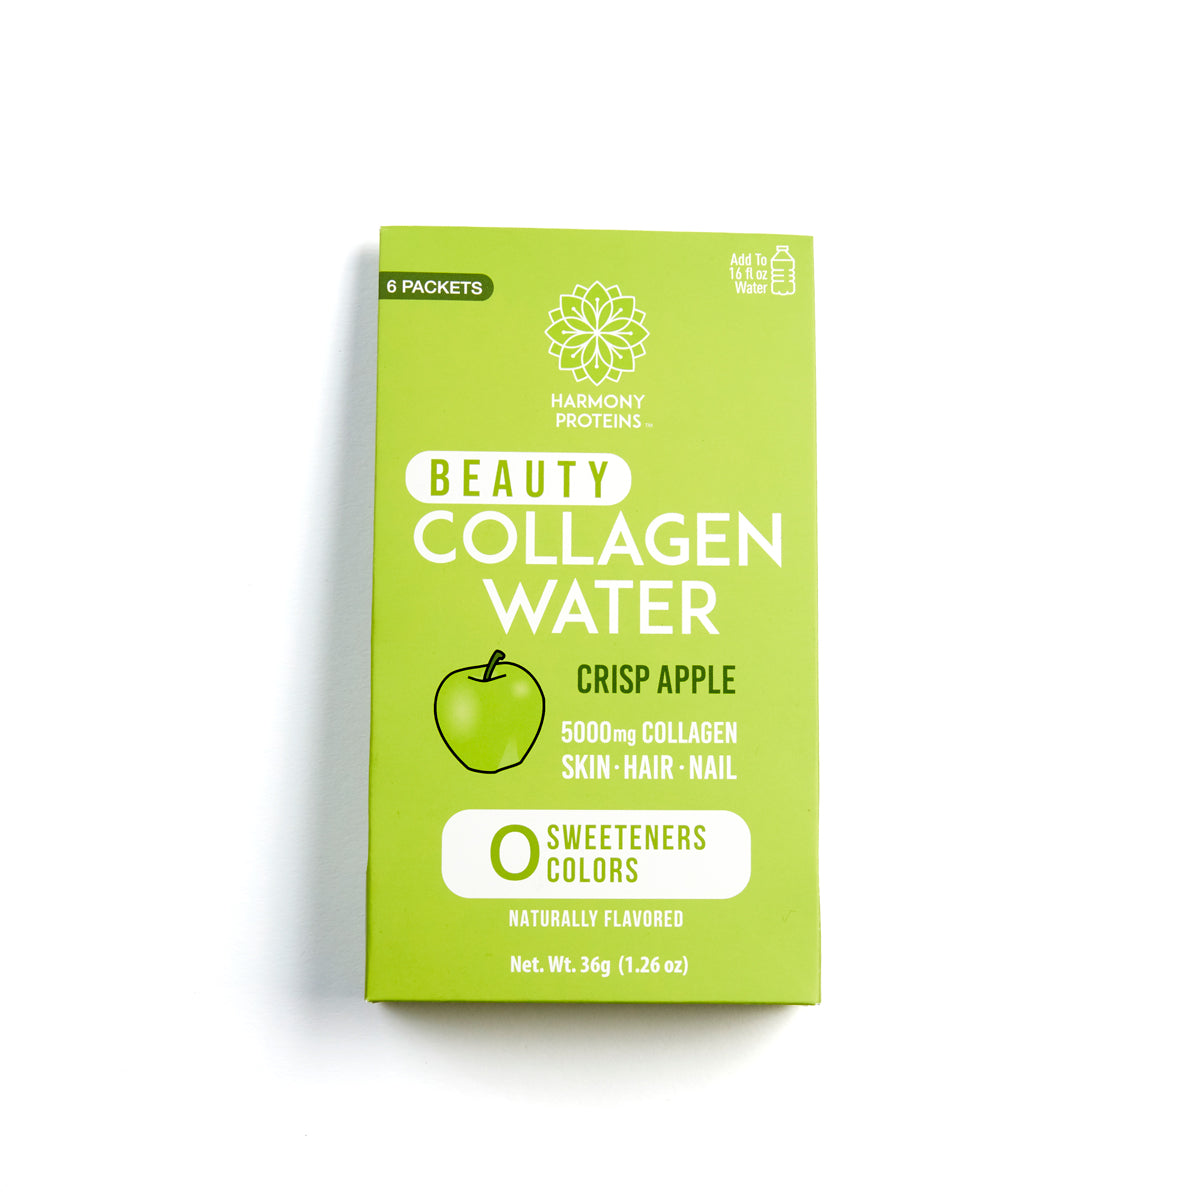 Beauty Collagen Water - Crisp Apple